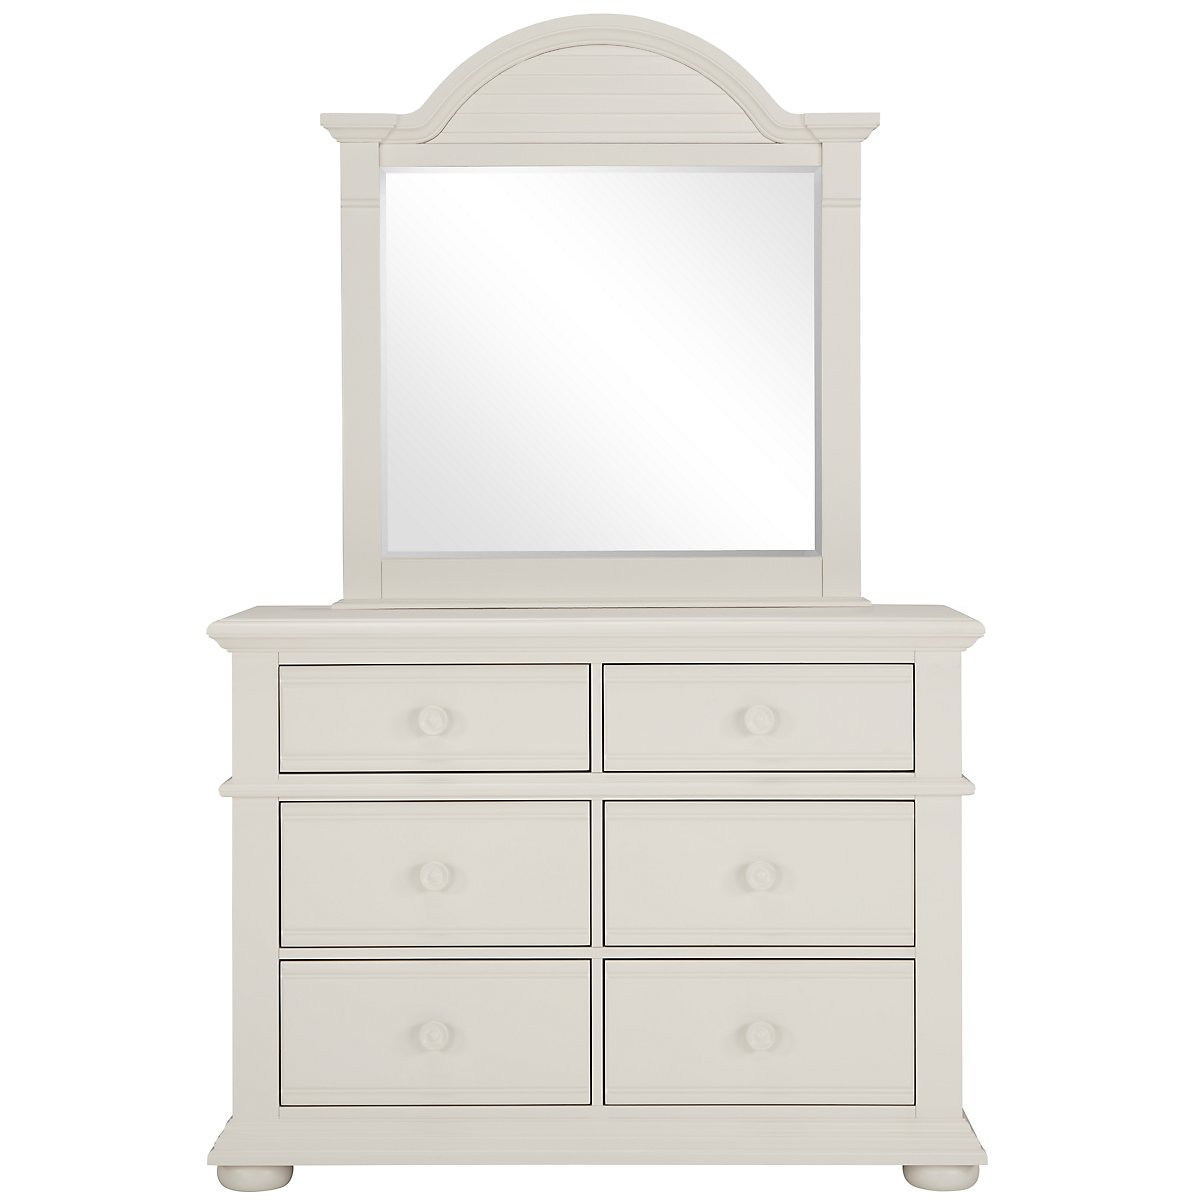 Quinn White Wood Dresser & Mirror